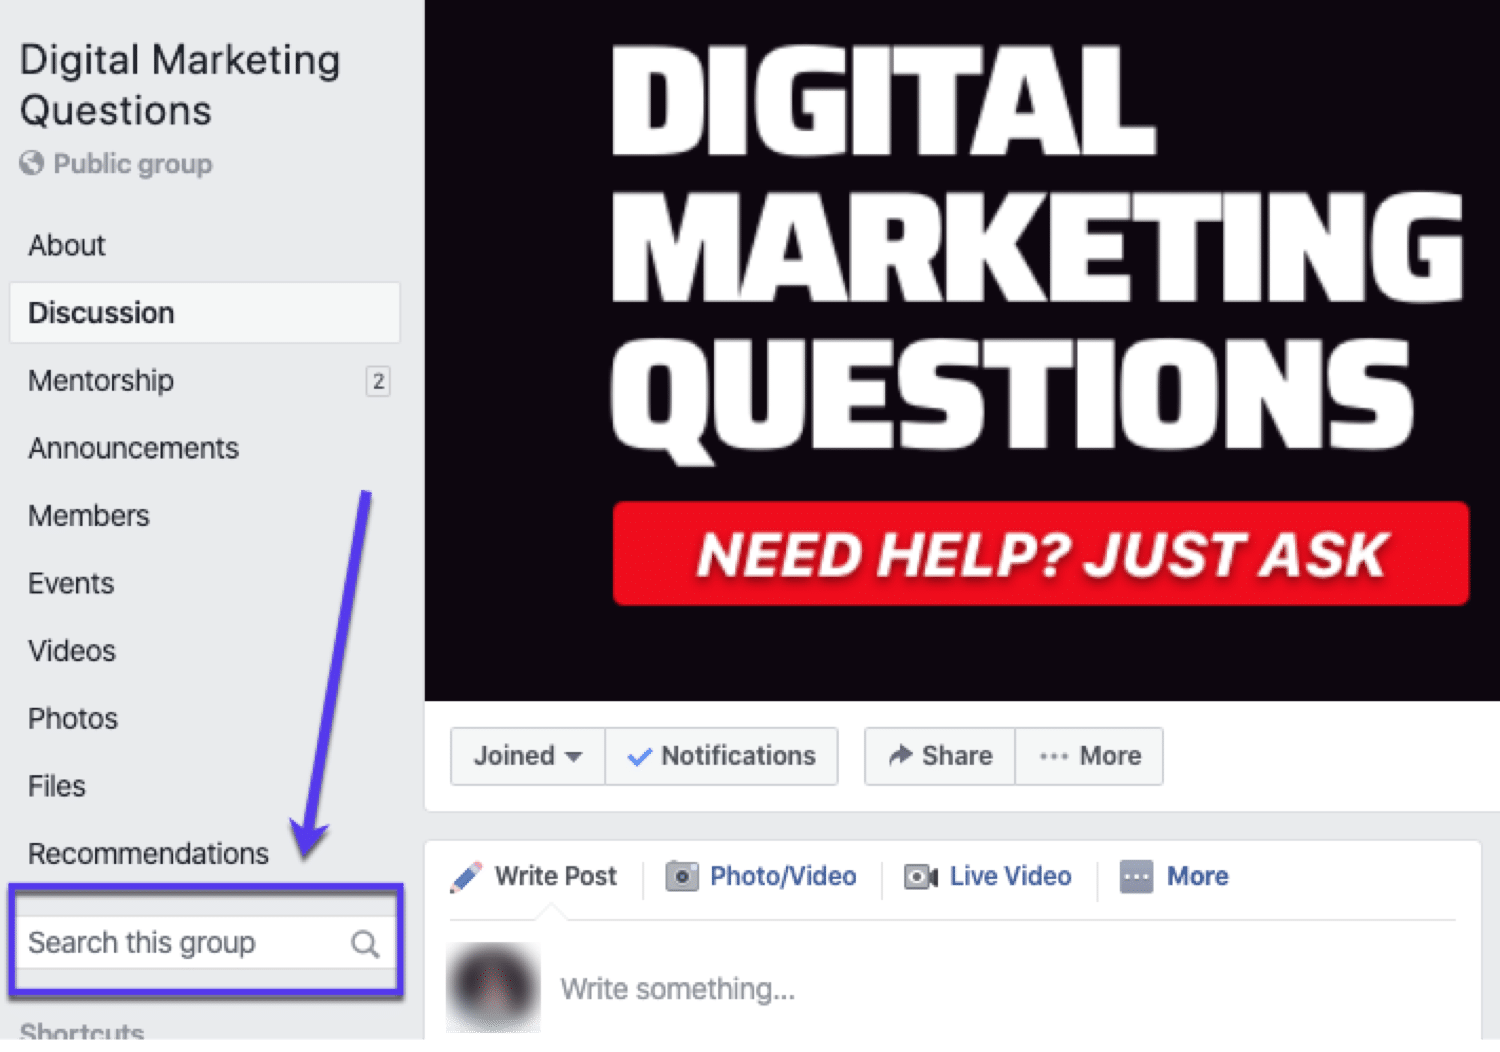 Digital Marketing Questions is a popular Facebook group